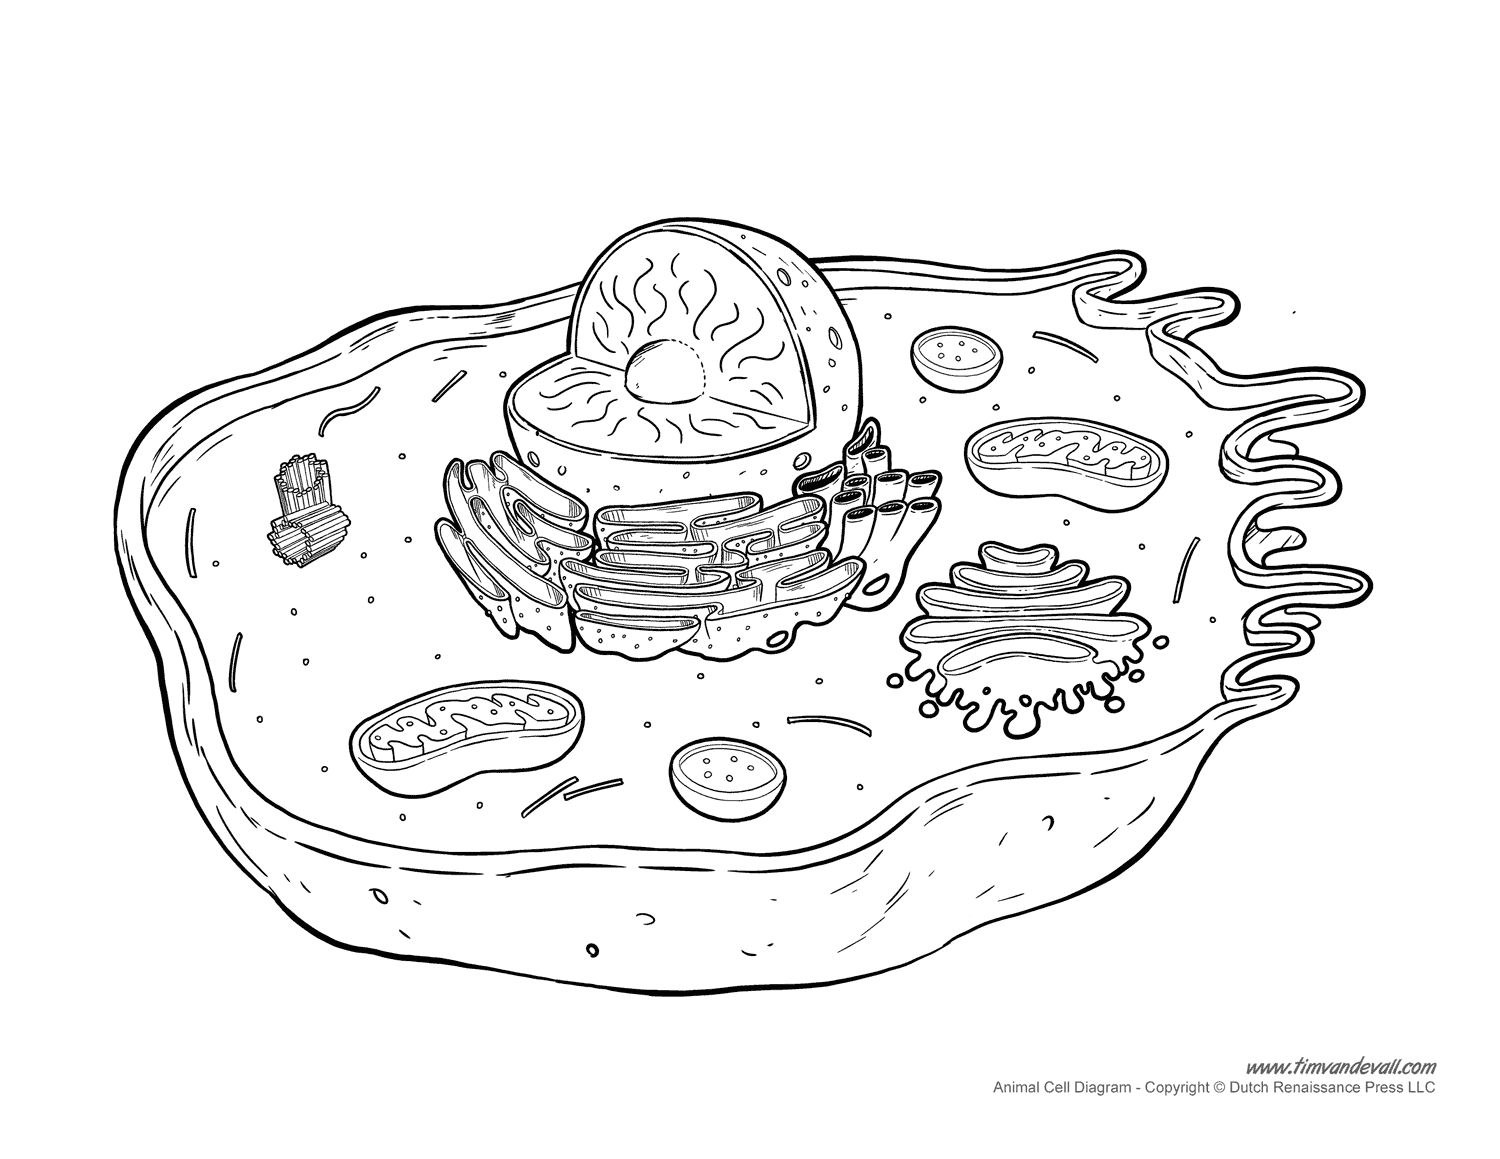 animal cell diagram labeled with functions 2006 toyota tundra radio wiring printable  unlabeled and blank